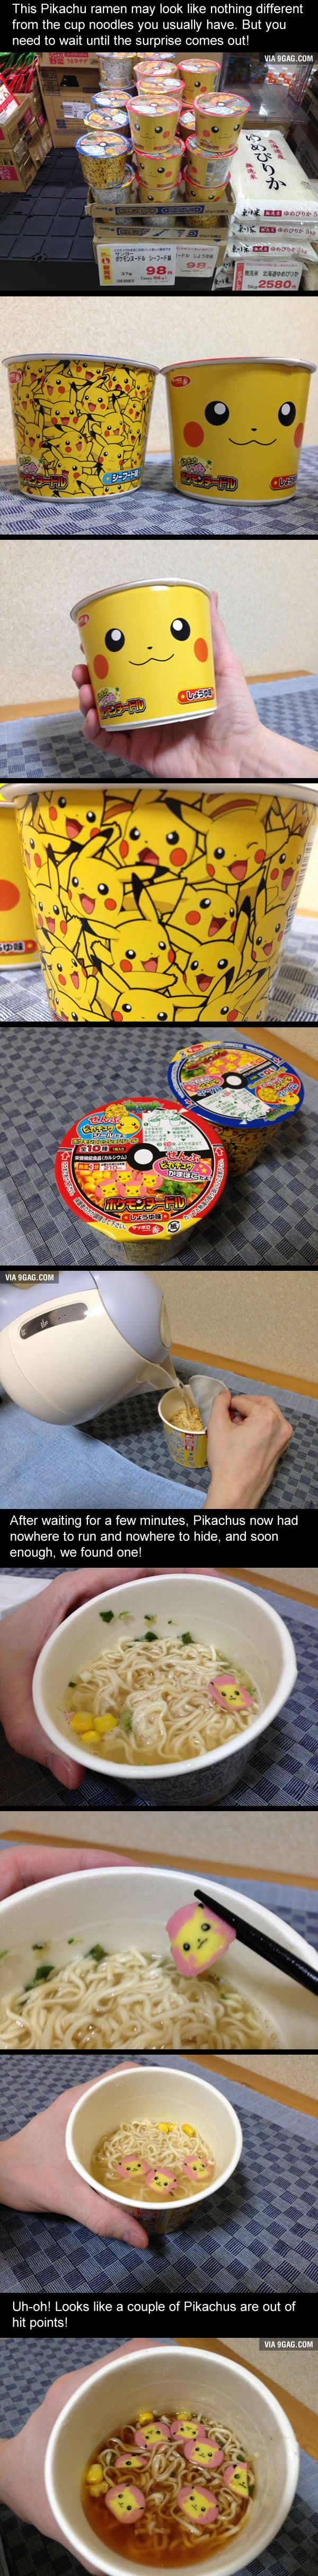 This Pikachu Ramen Looks Super Cute, And It Has A Surprise Waiting For You - 9GAG